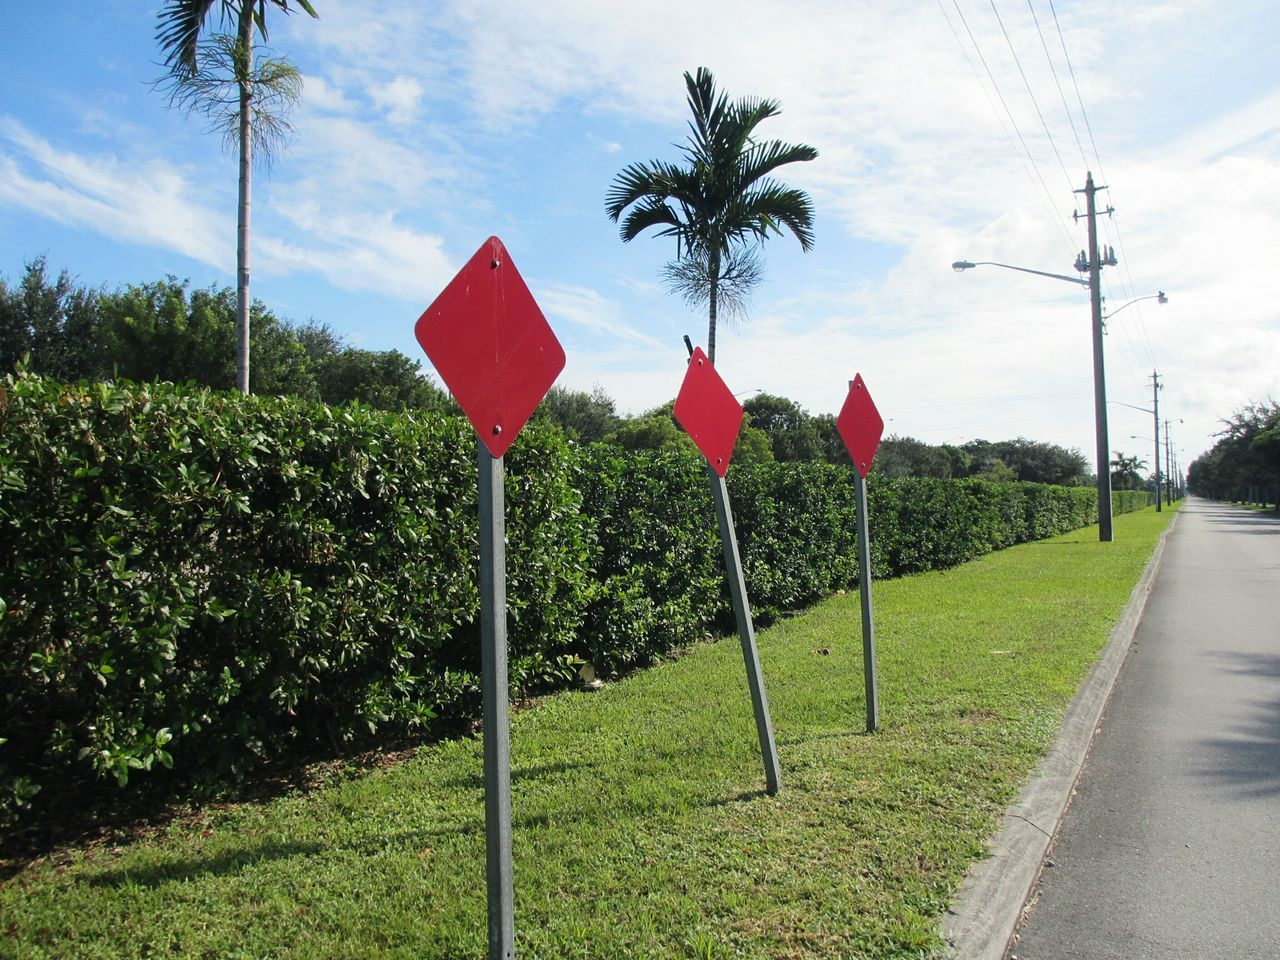 Red Road Signs By Road Against Cloudy Sky On Sunny Day